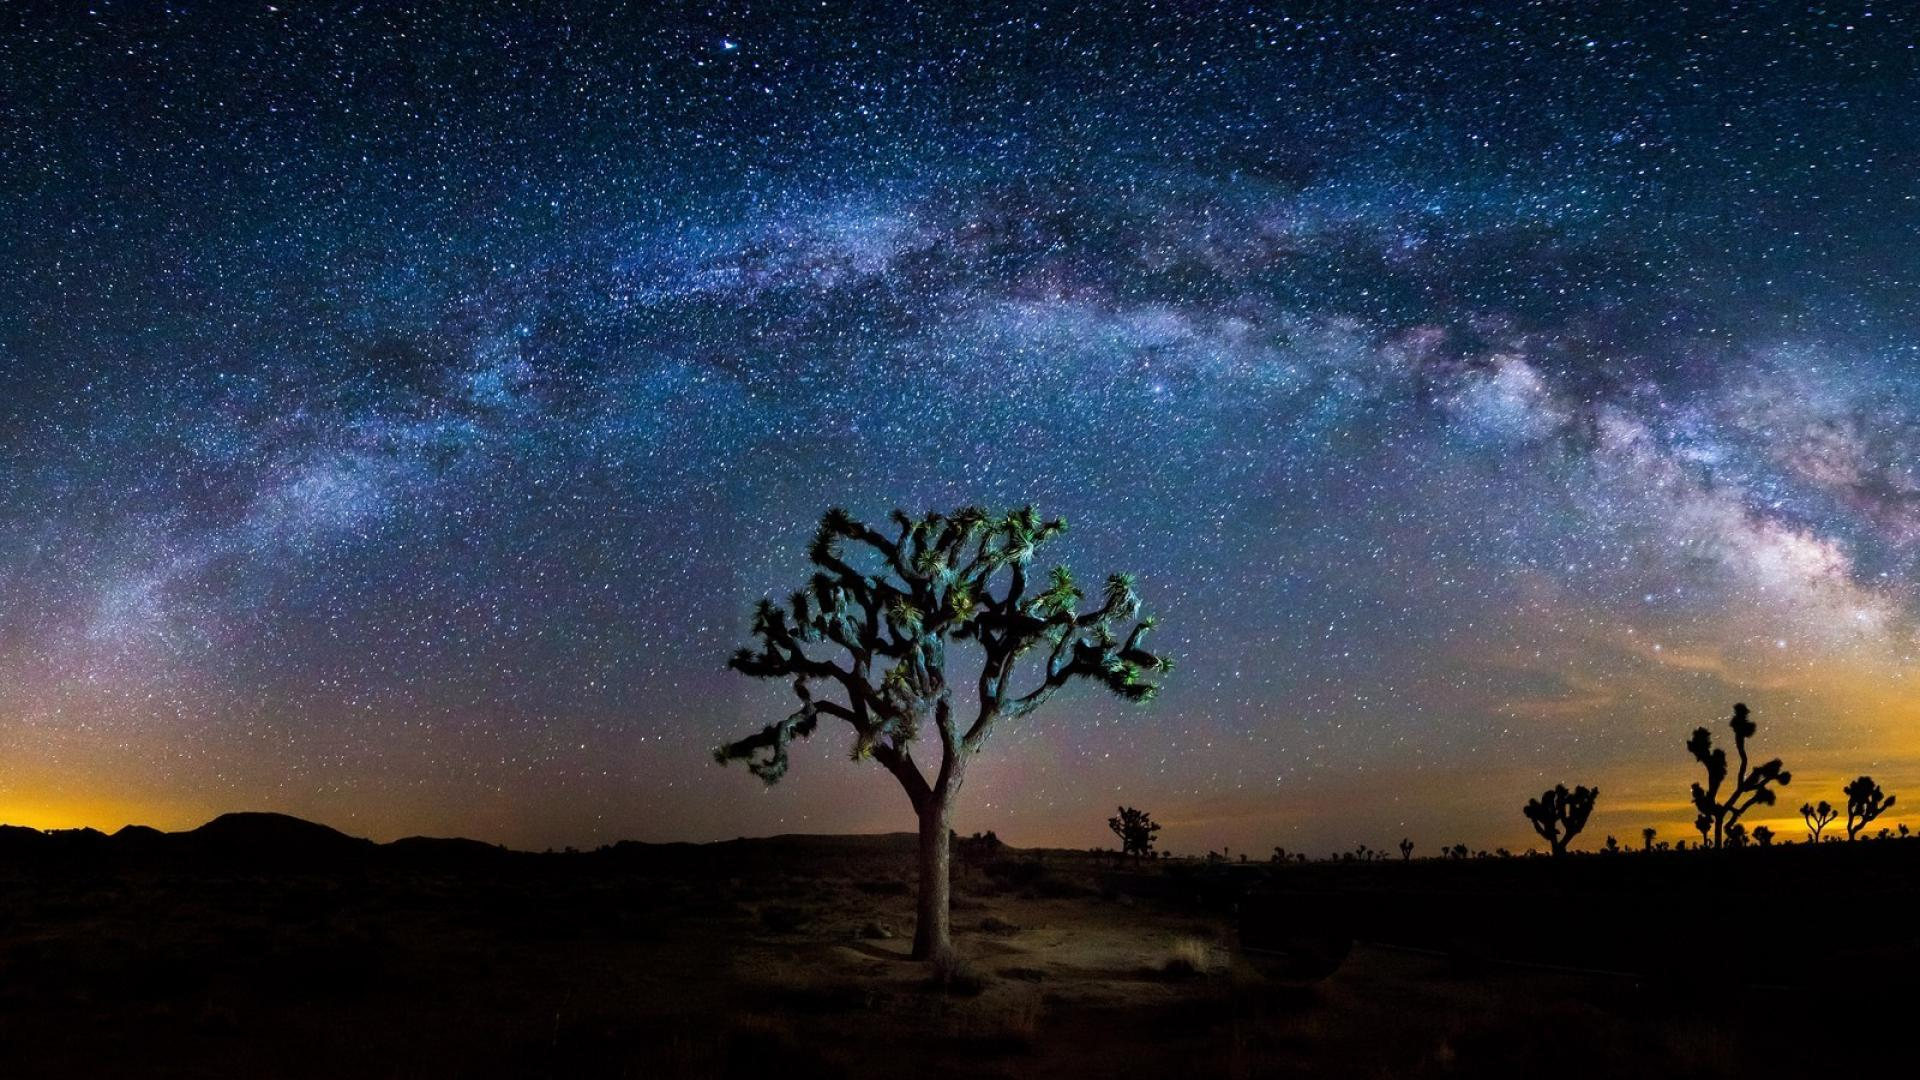 joshua tree national park milky way geographic wallpaper 73244 1920x1080